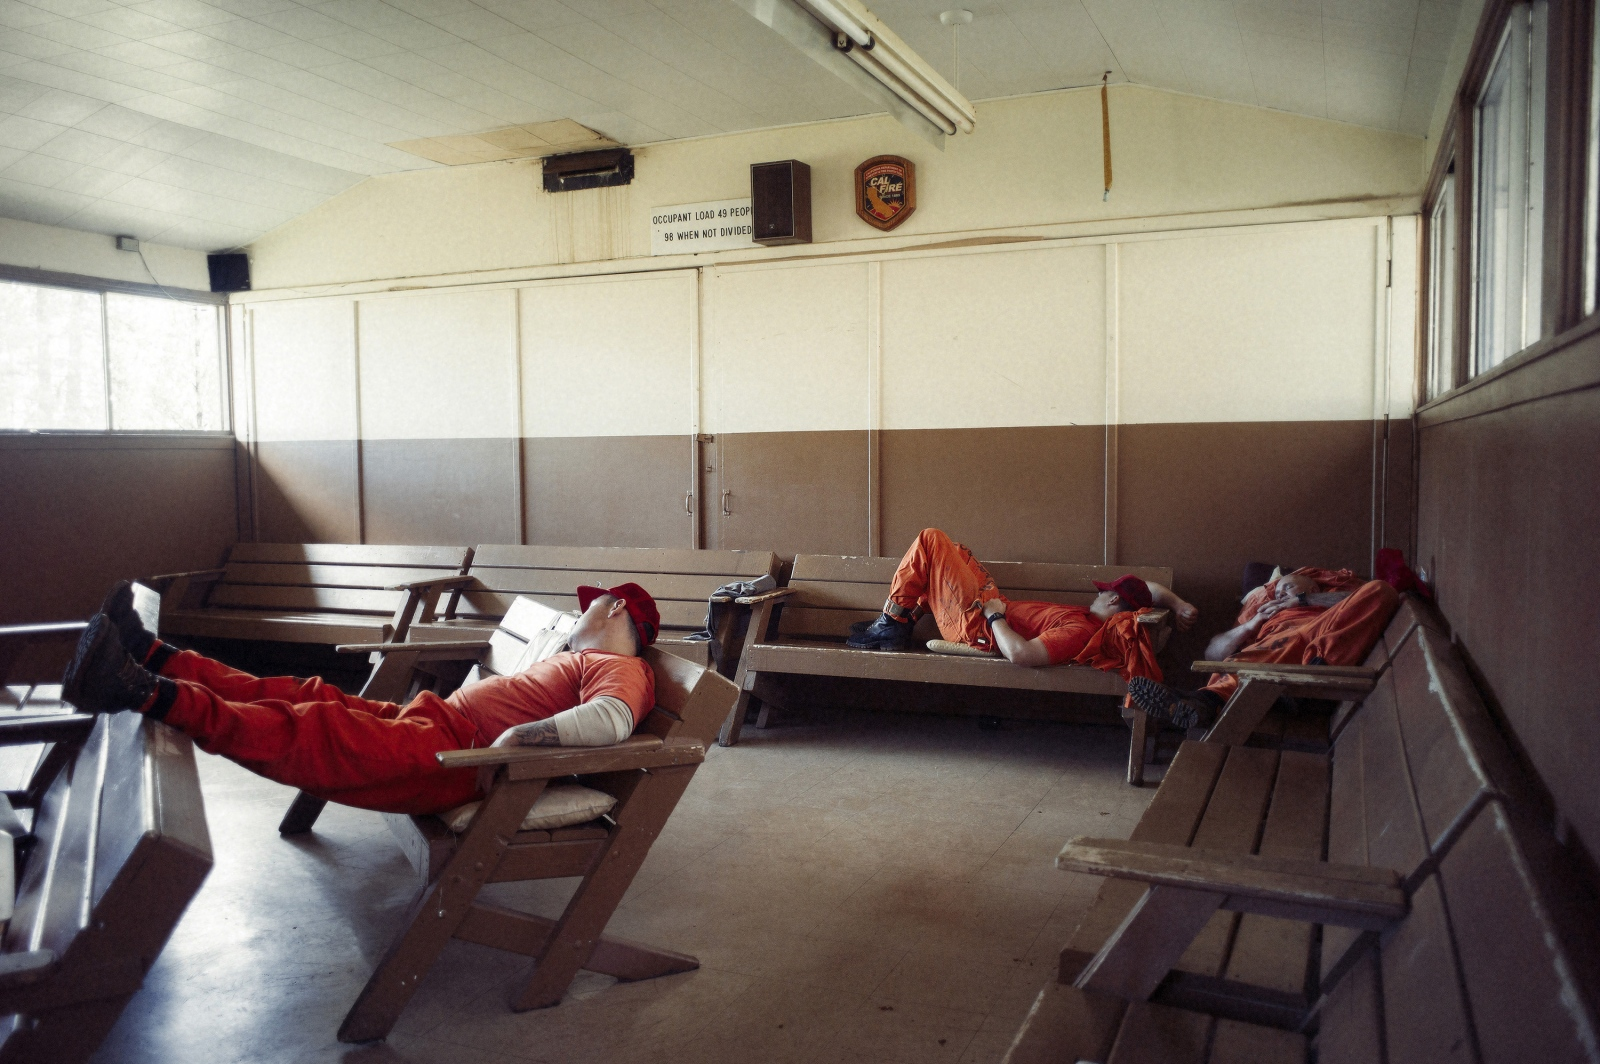 A percentage of inmates must remain dressed, ready and on-call for fires at all times, throughout the day as they can be called on at any time by Cal Fire to assist on anything from a fire to a medical emergency.